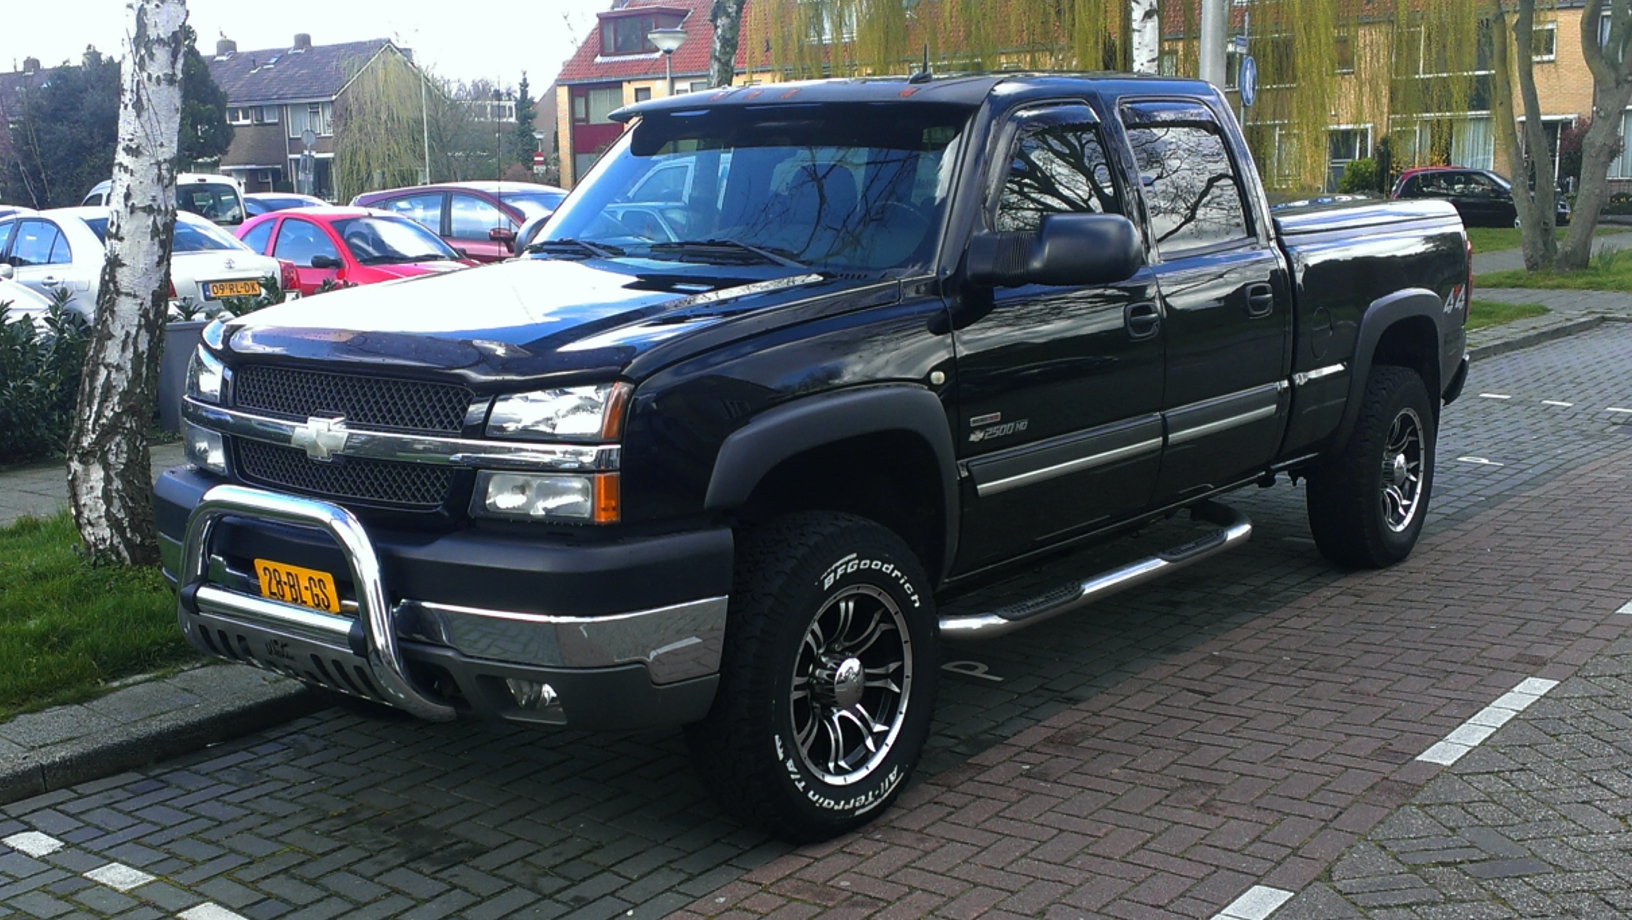 file chevrolet silverado 2500 wikimedia commons. Black Bedroom Furniture Sets. Home Design Ideas